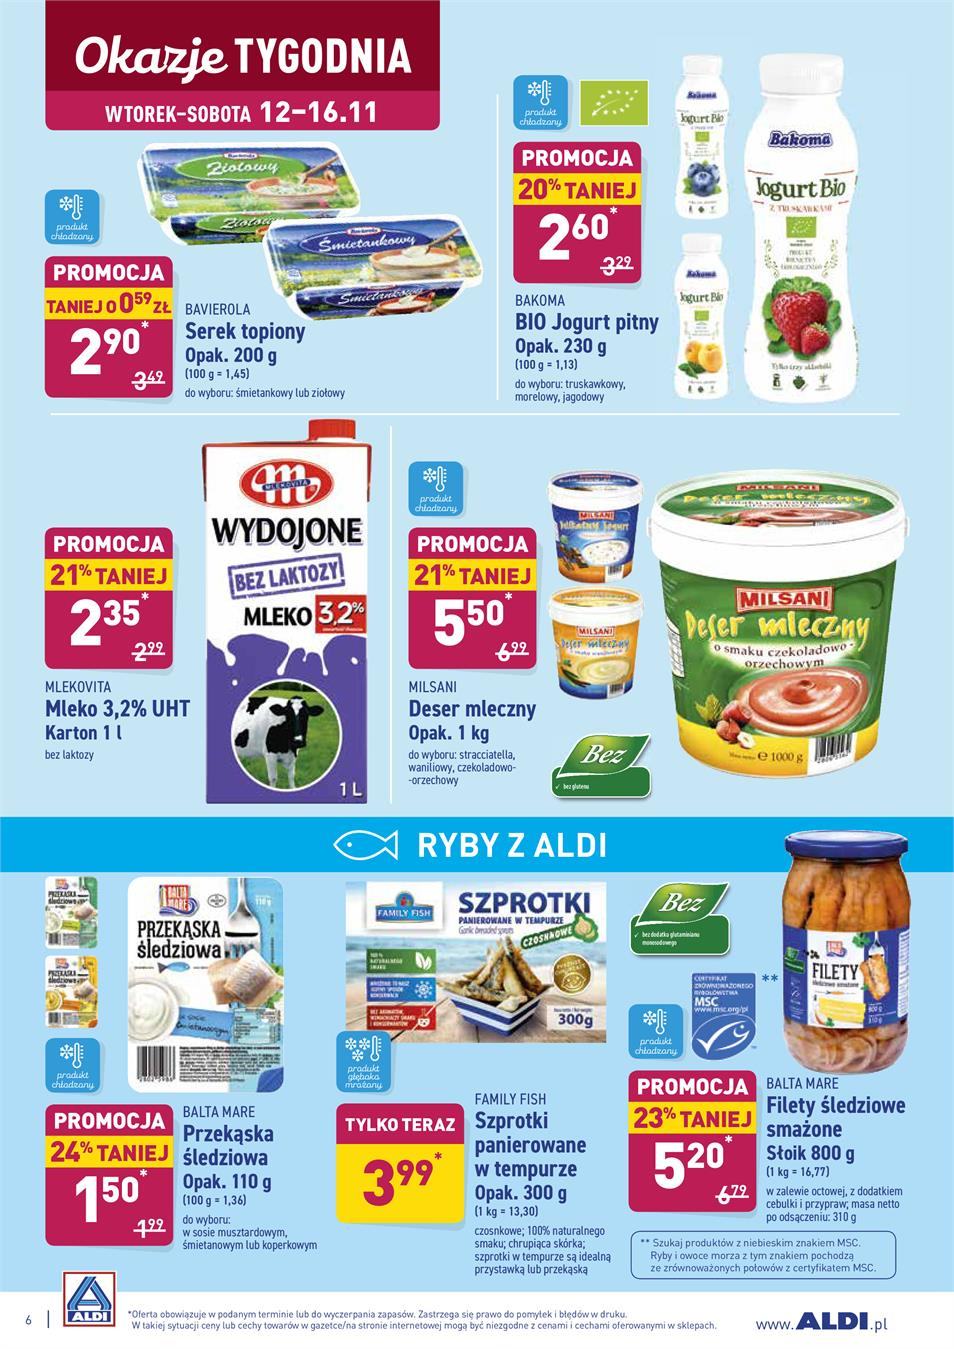 Gazetka ALDI SP Z O O  nr 6 od 2019-11-12 do 2019-11-16